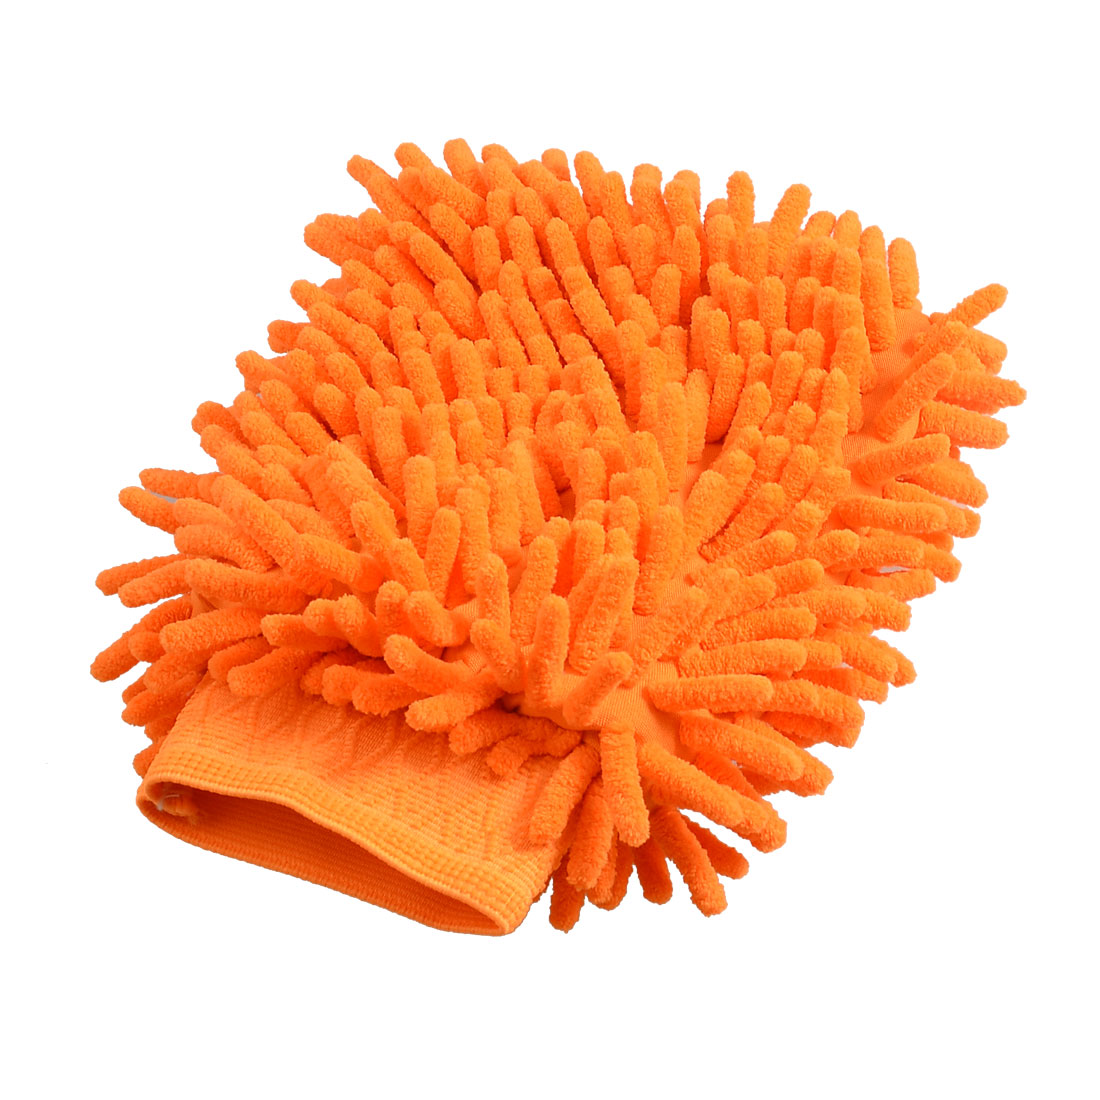 Car 23cm x 15cm Orange Dual Sides Microfiber Chenille Wash Mitt Glove